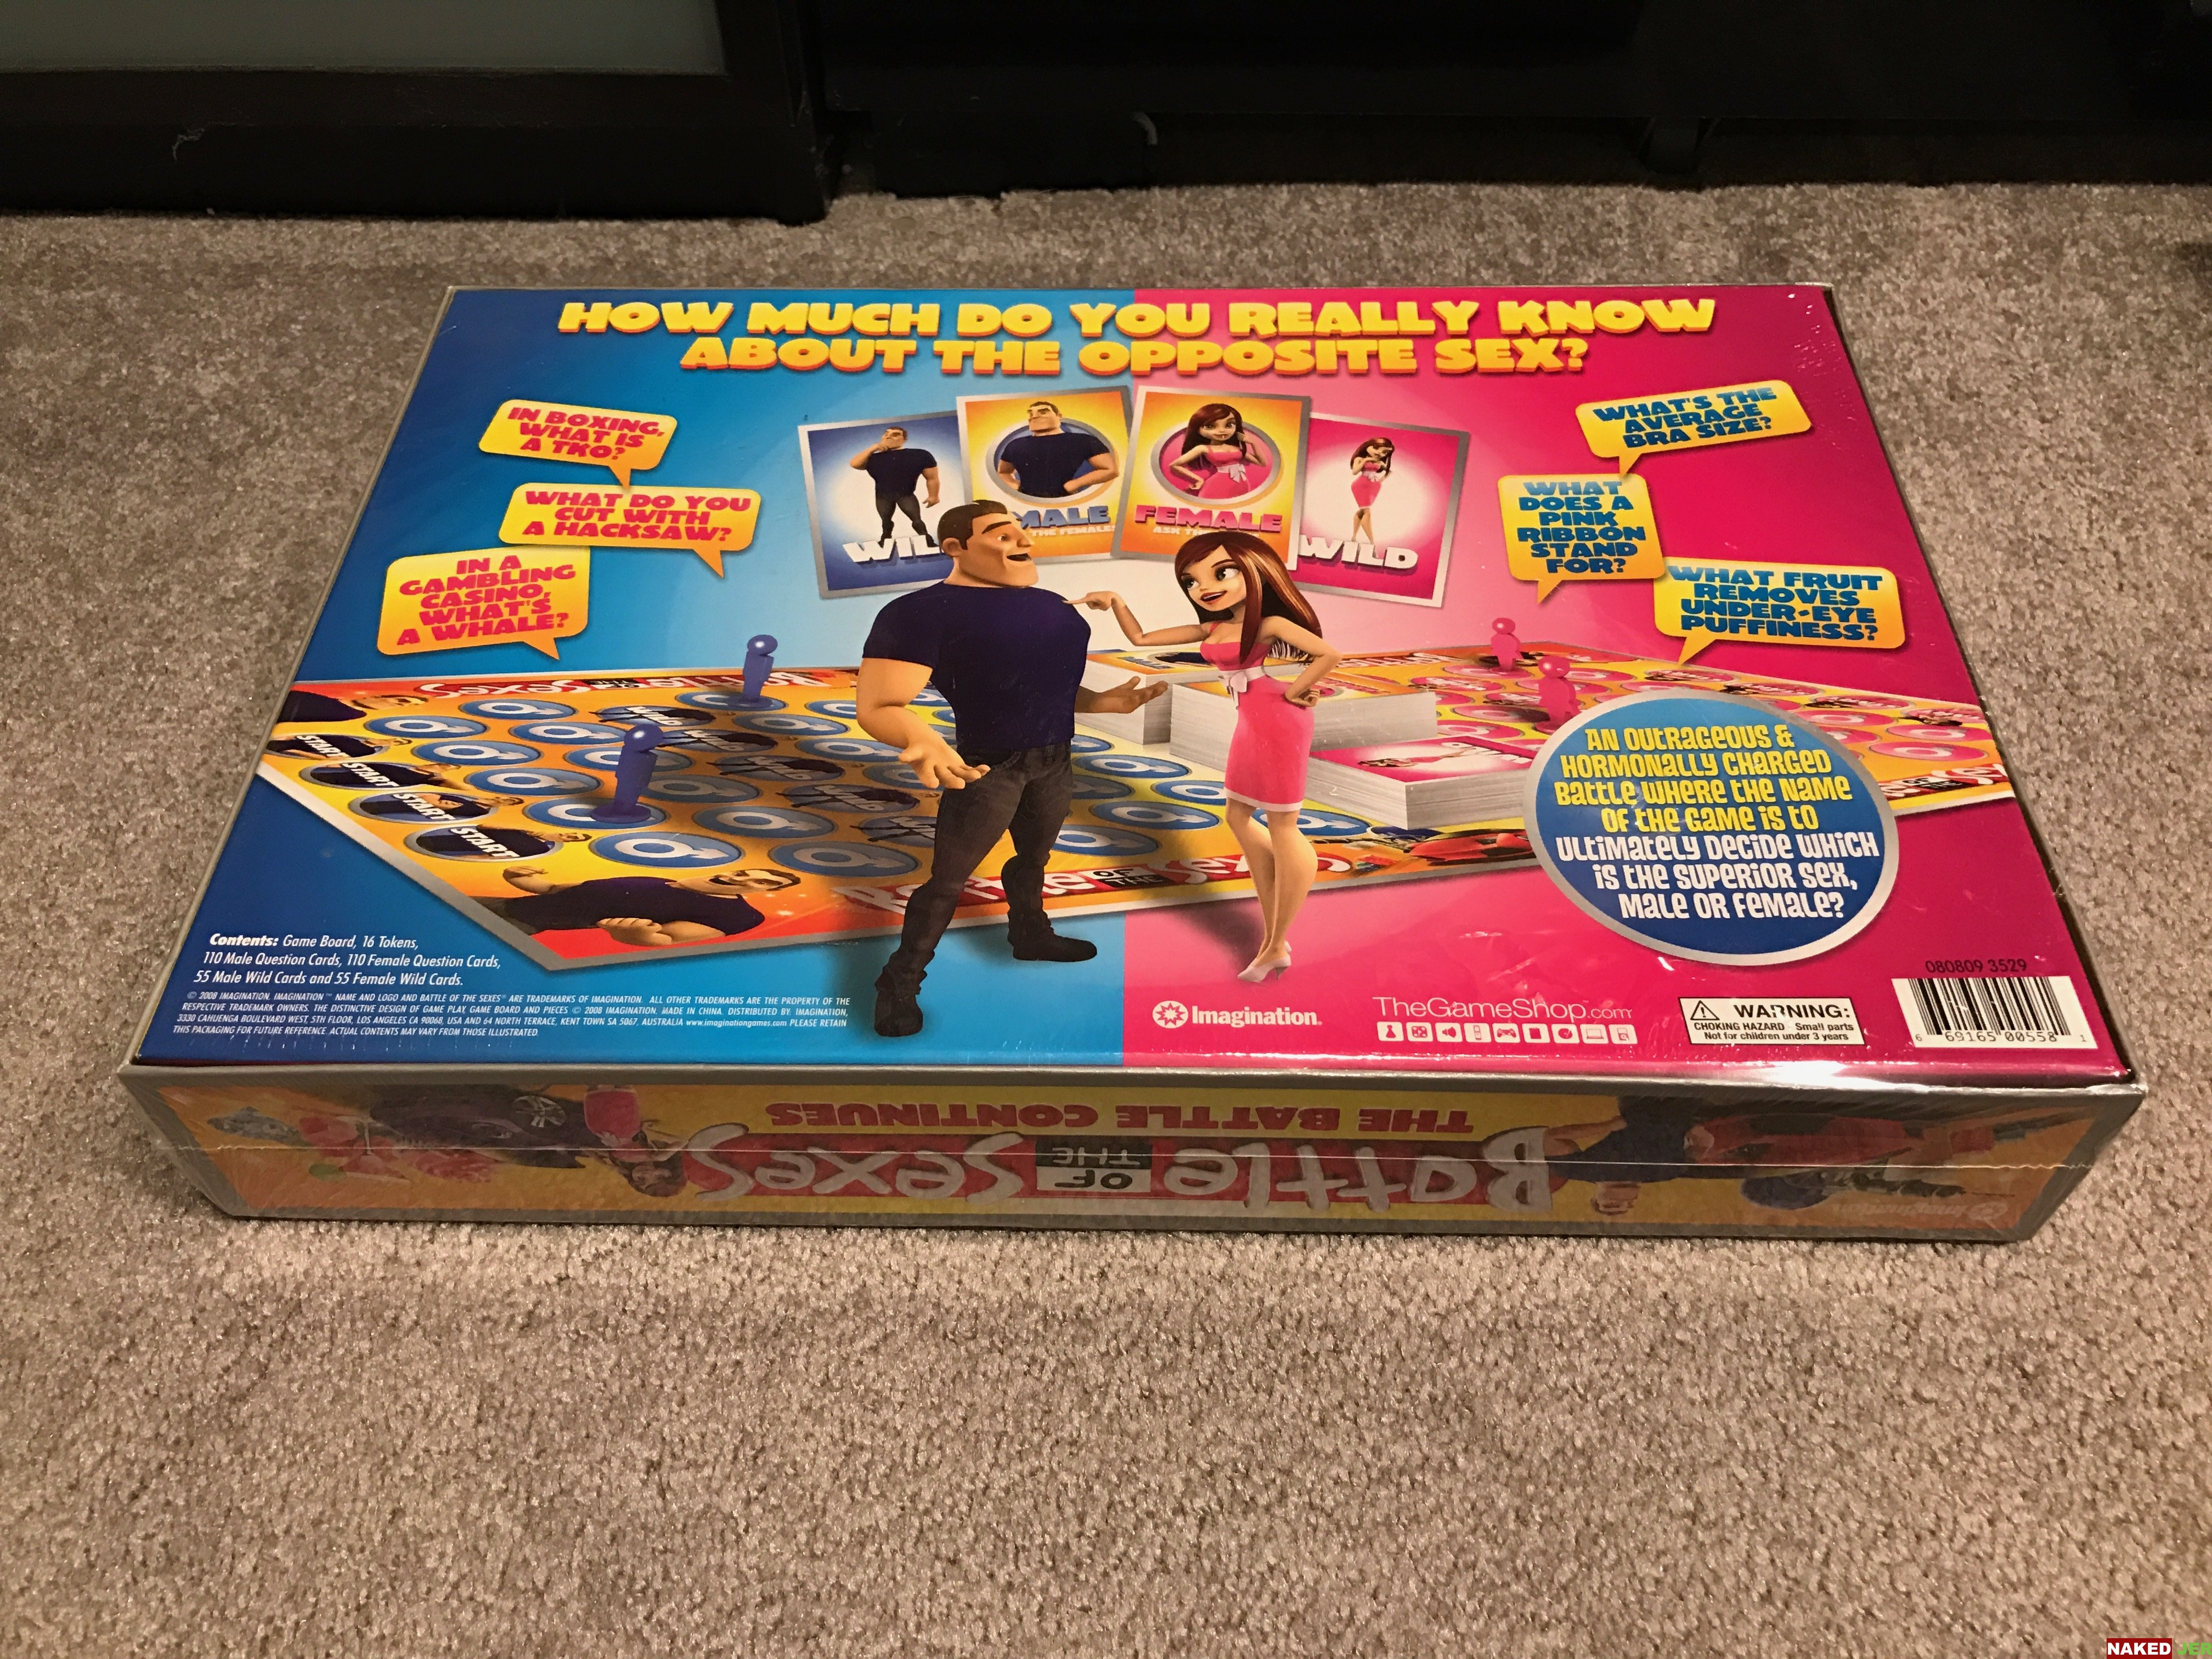 Battle of the Sexes board game, new in the box. Still sealed. $5